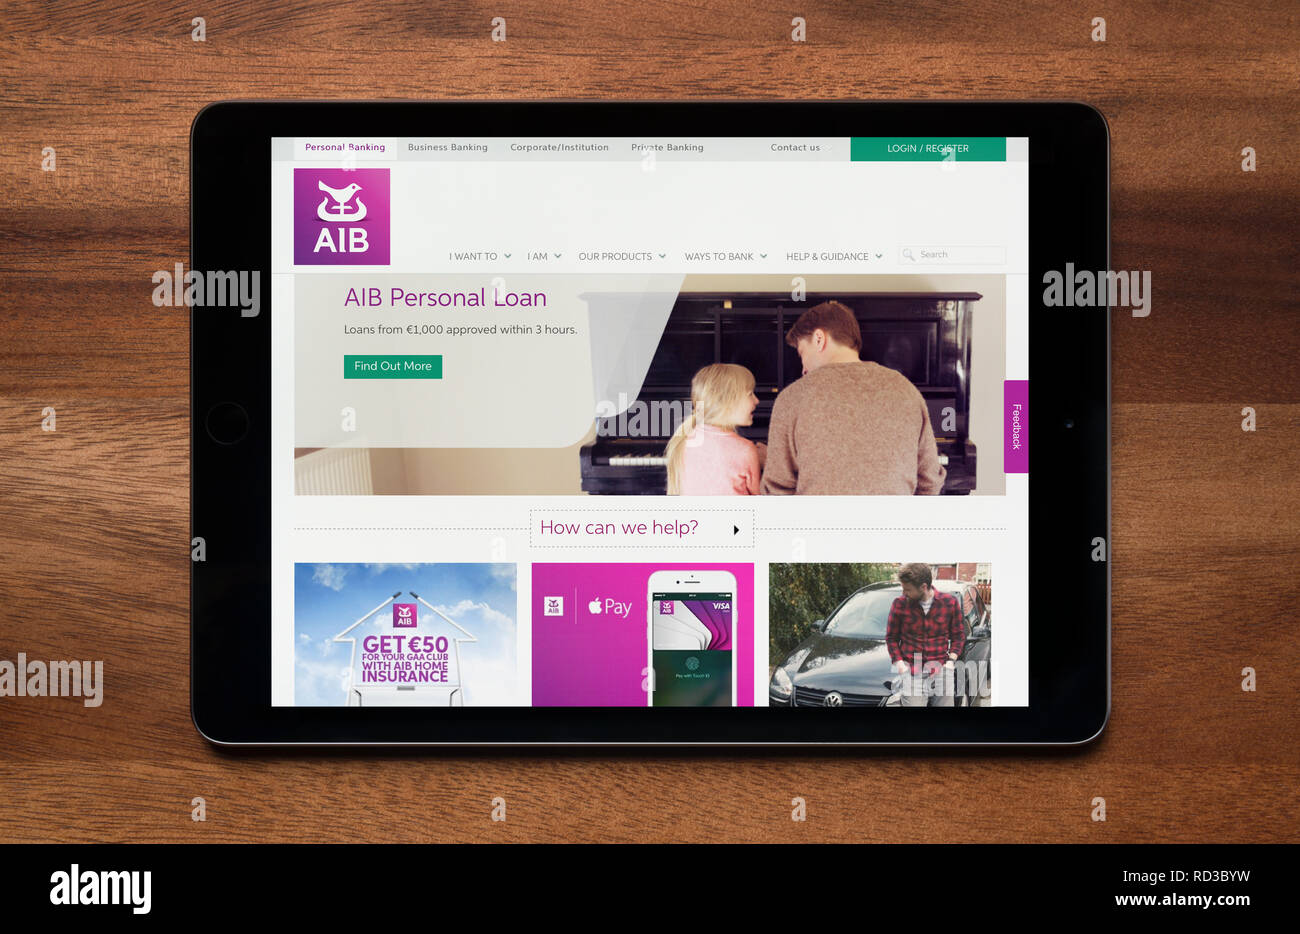 The website of AIB (Allied Irish Banks) is seen on an iPad tablet, which is resting on a wooden table (Editorial use only). - Stock Image